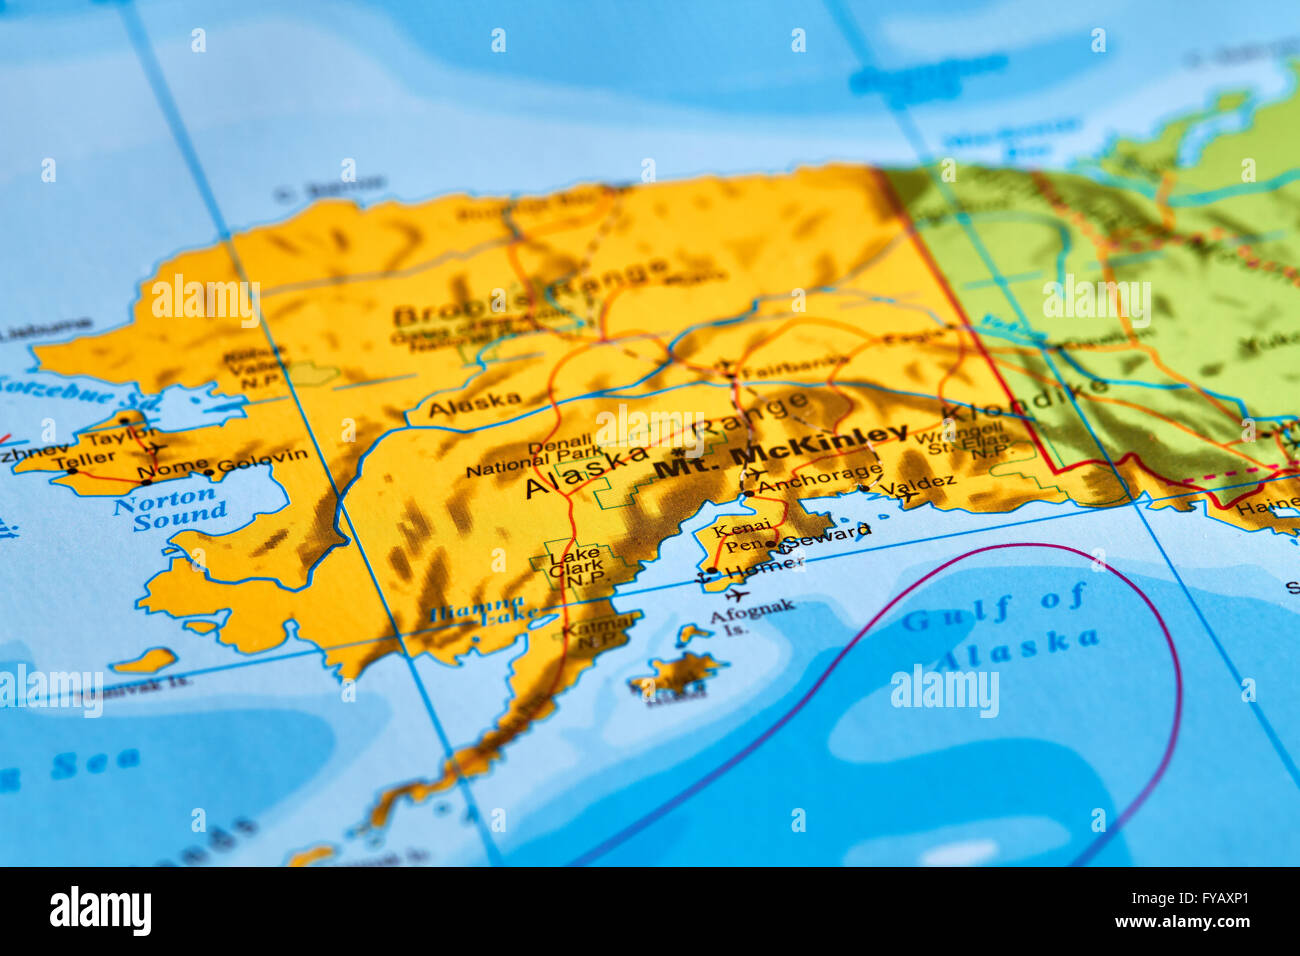 Alaska state in usa on the world map stock photo 102888073 alamy alaska state in usa on the world map gumiabroncs Images